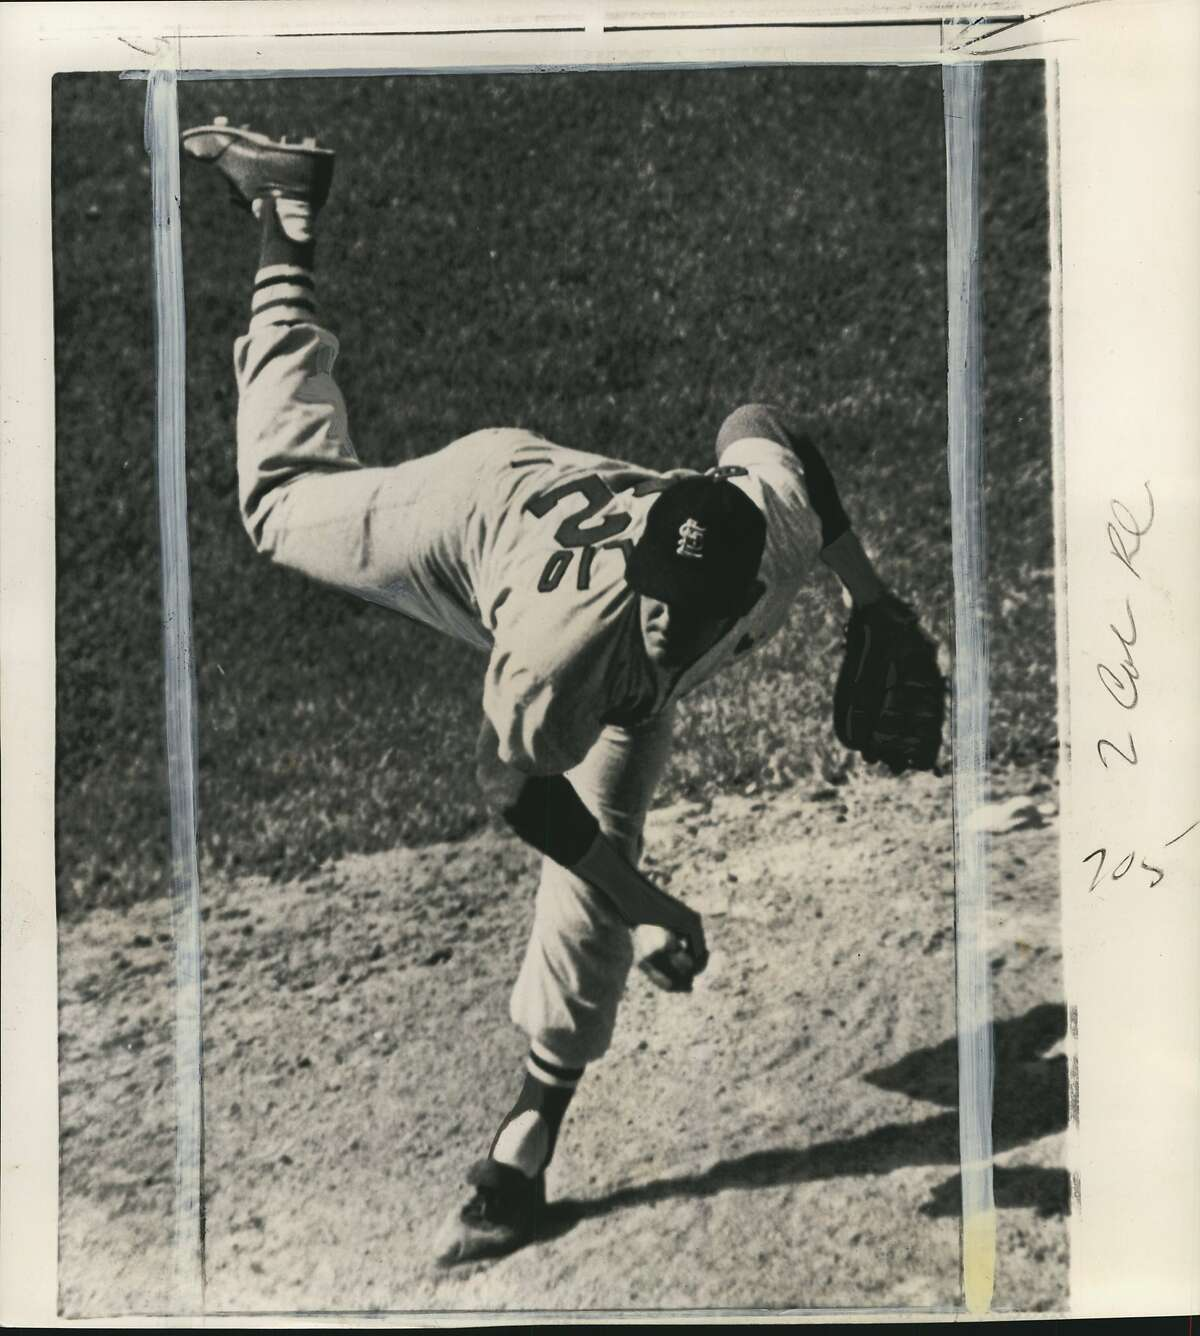 Broglio, Ernie (Baseball). Ernie Broglio of the St. Louis Cardinals lifts one leg high as he lets go a pitch against the Chicago Cubs while turning in his fifth shutout of the season Thursday in defeating the Windy City nine 1-0. Only one Cub got to second base.